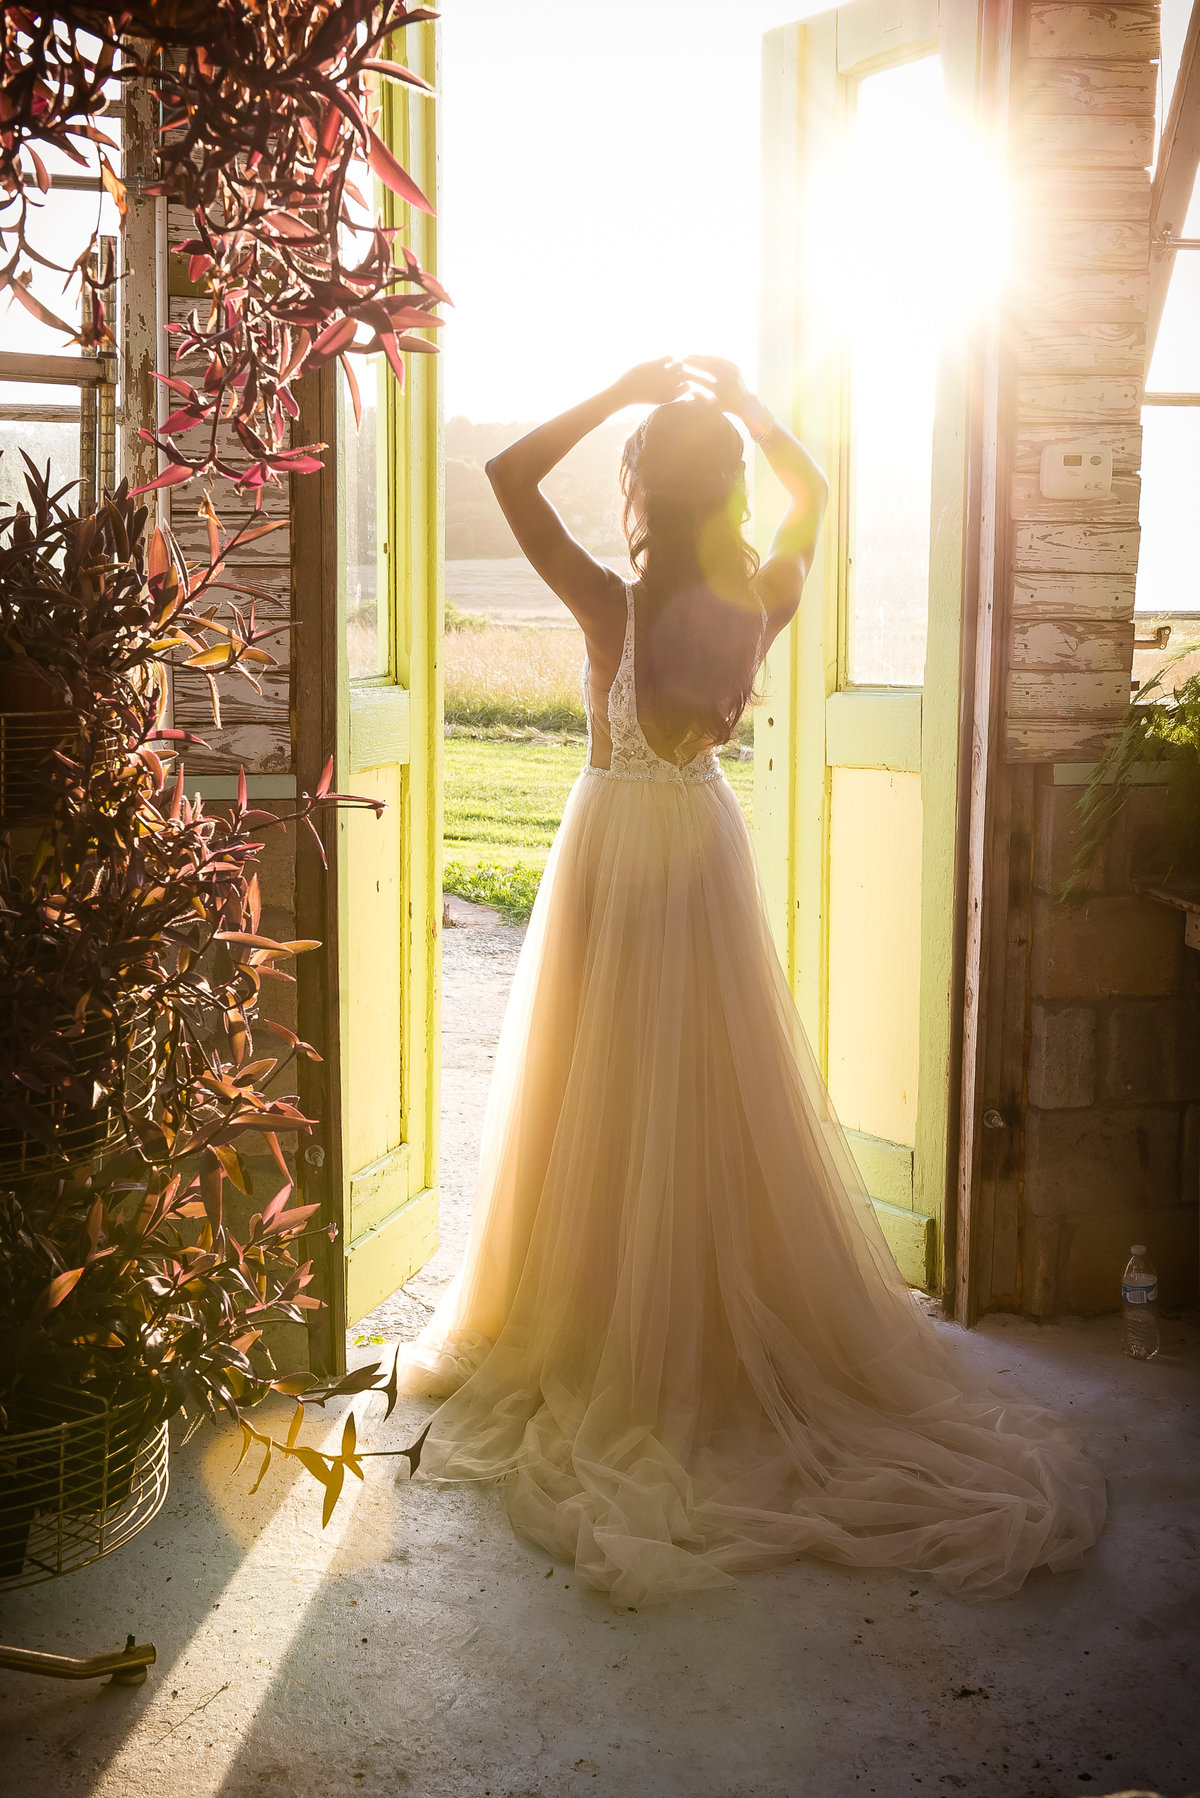 Bride in doorway at sunset